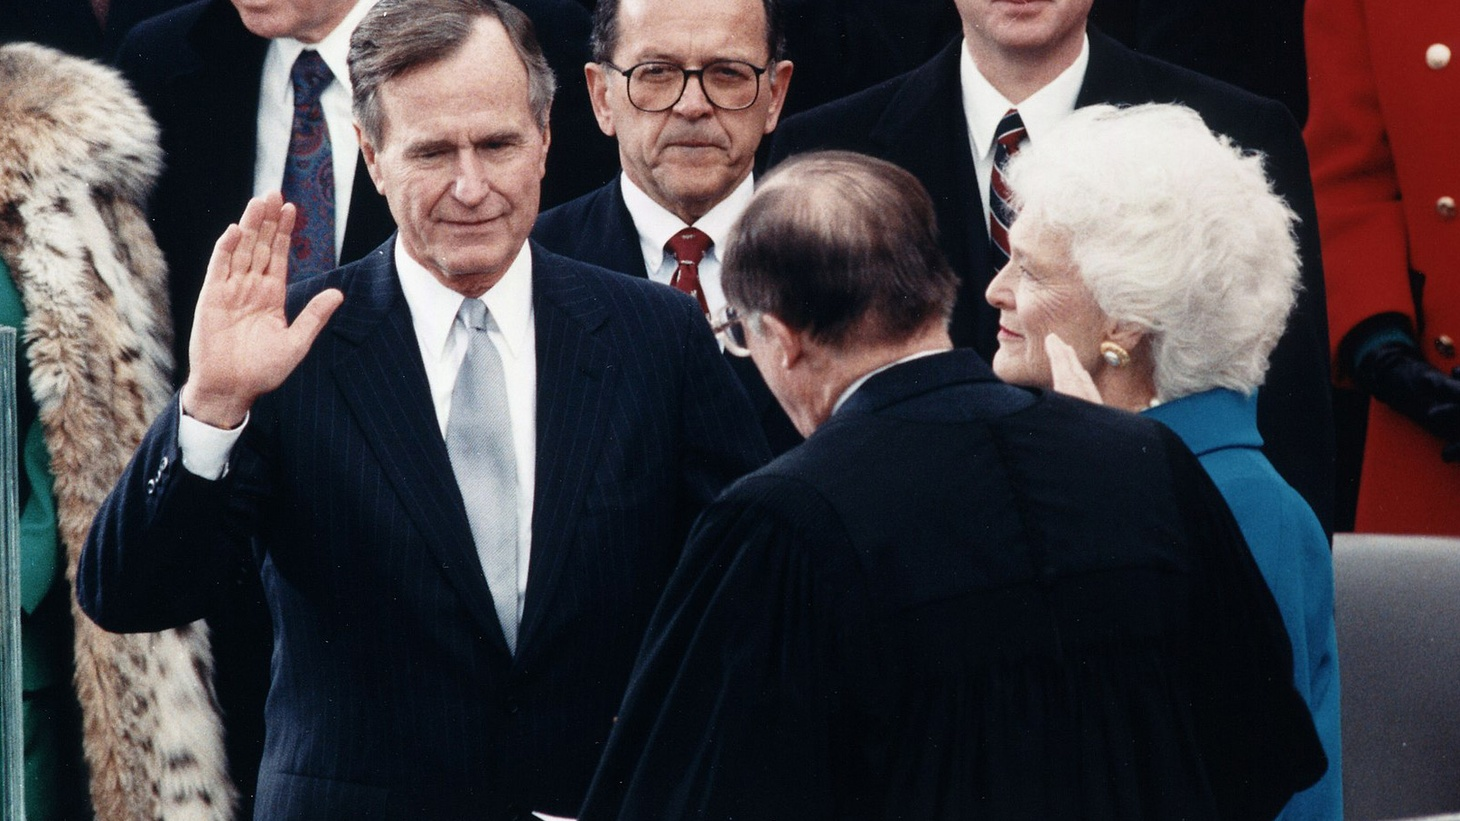 A balanced look at George H.W. Bush includes: the smear campaign that won him the White House, his successes in war and diplomacy, and his almost forgotten role as an environmental president.